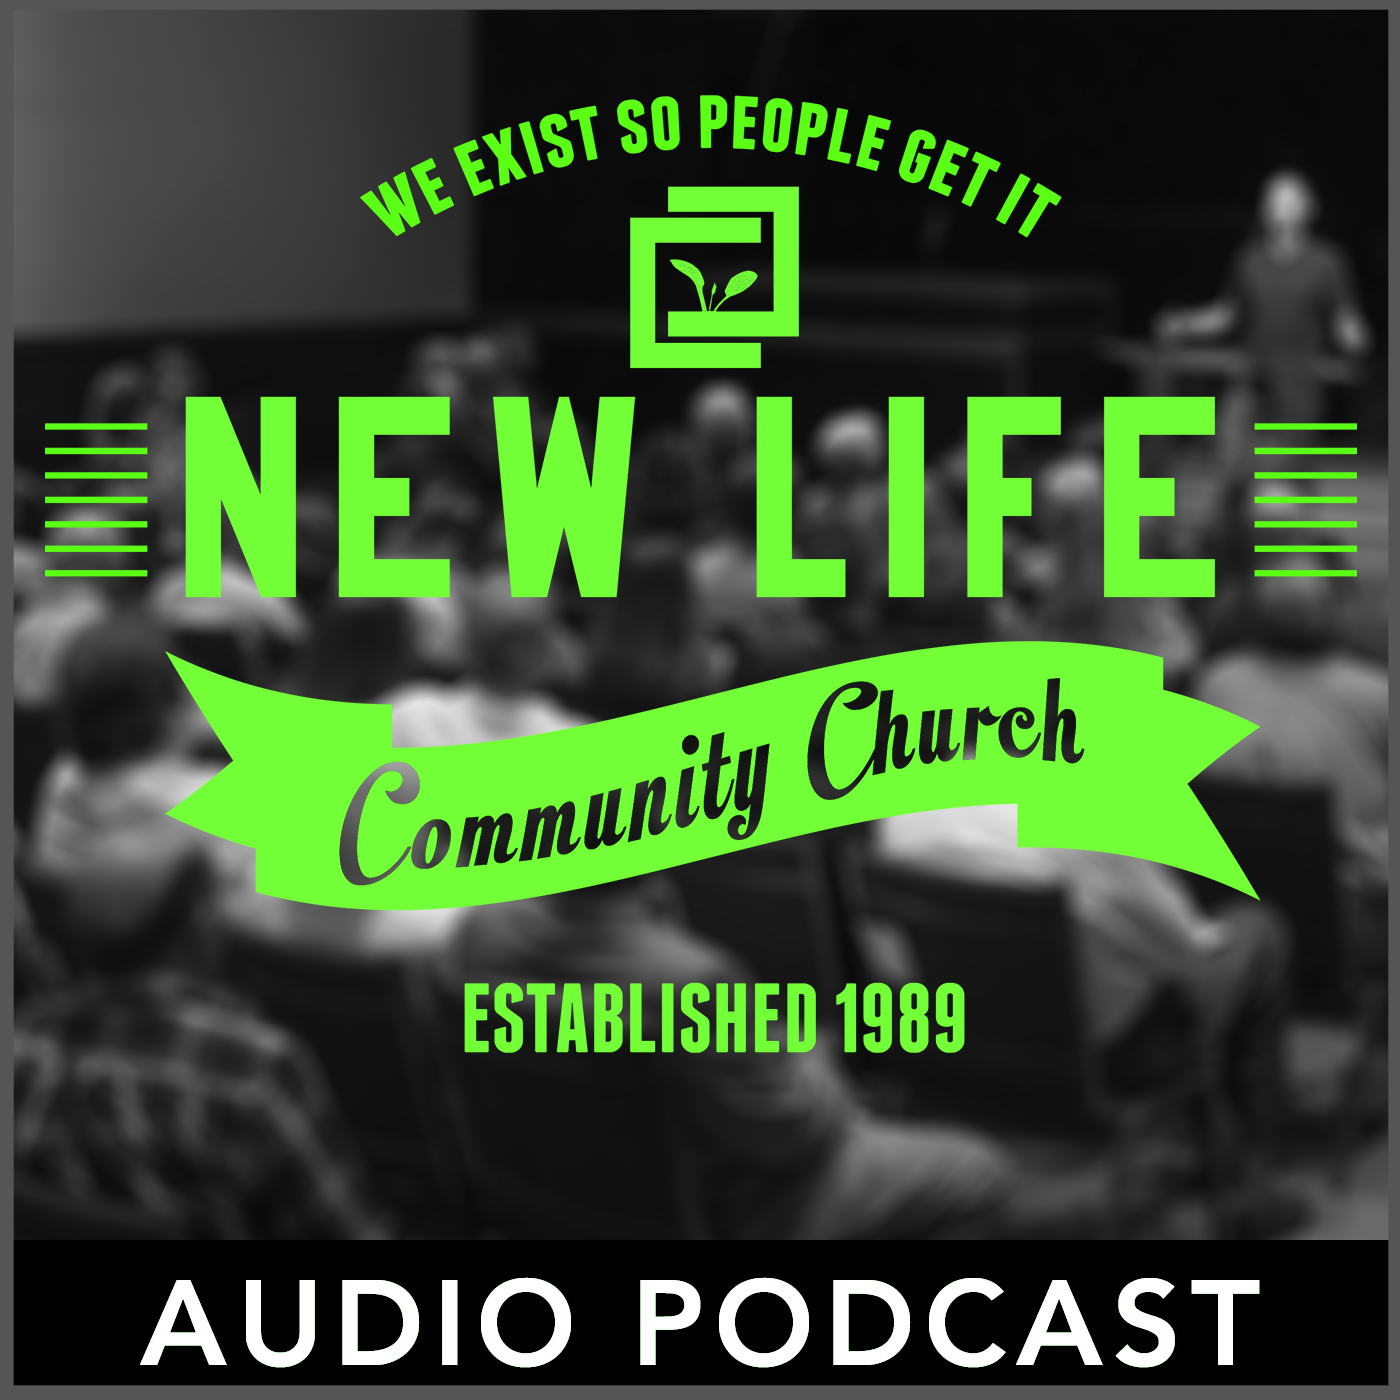 The New Life Community Church Podcast